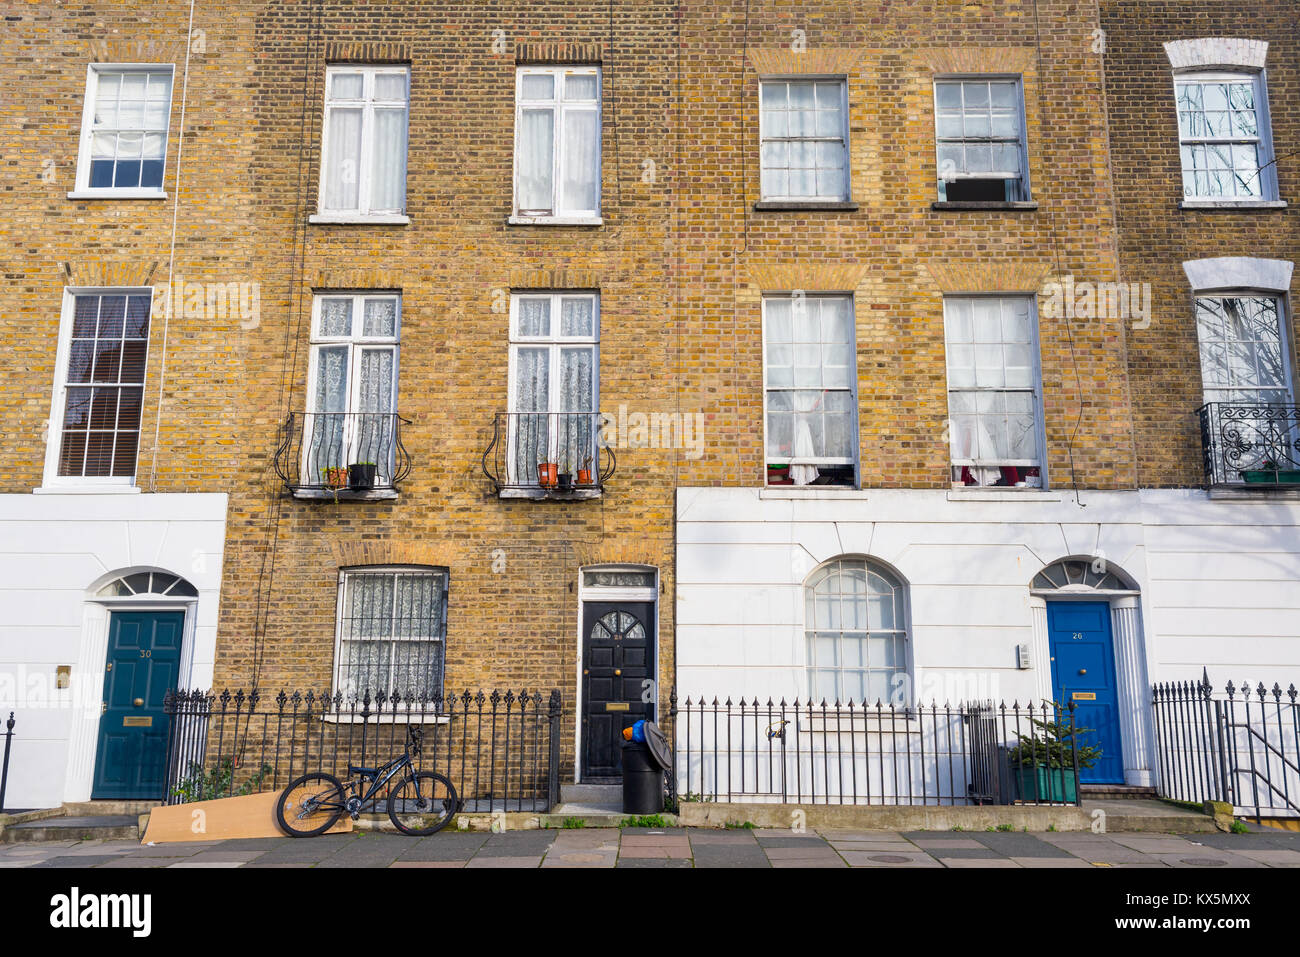 Angel, London, UK - January 2018: Facade of Edwardian Victorian restored residential houses in yellow bricks with - Stock Image